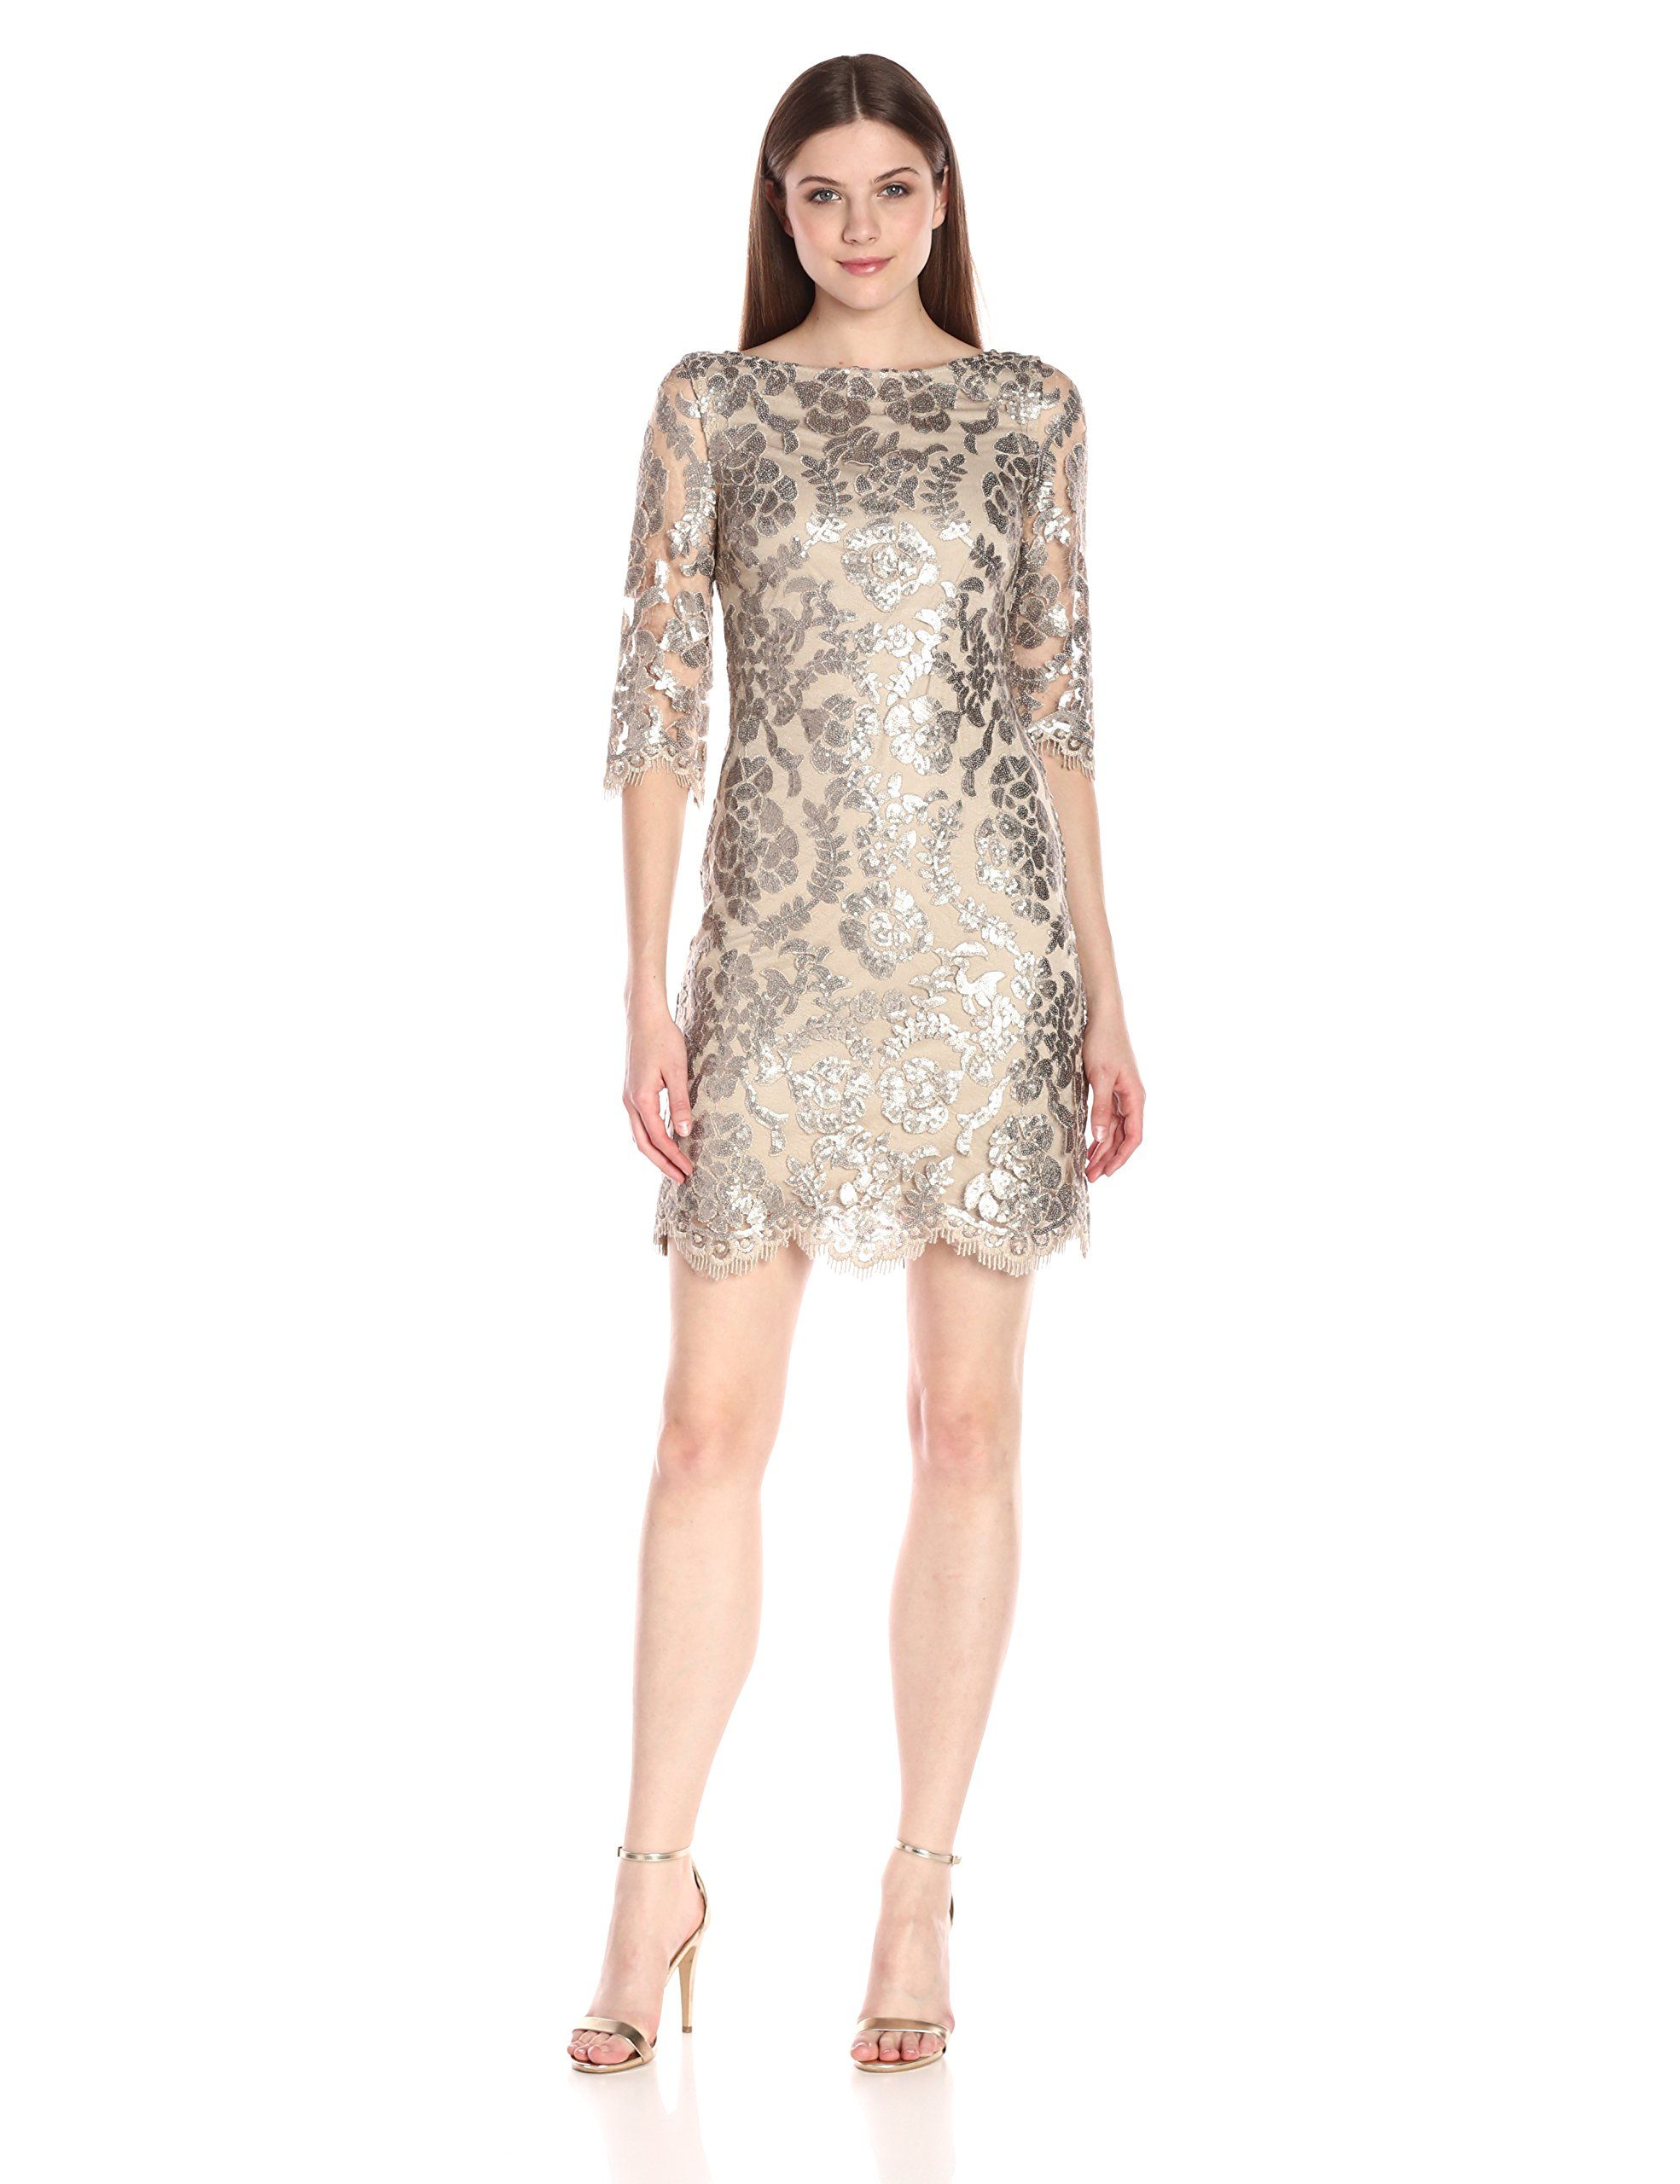 Robot Check | Lace dress with sleeves, Womens cocktail ...